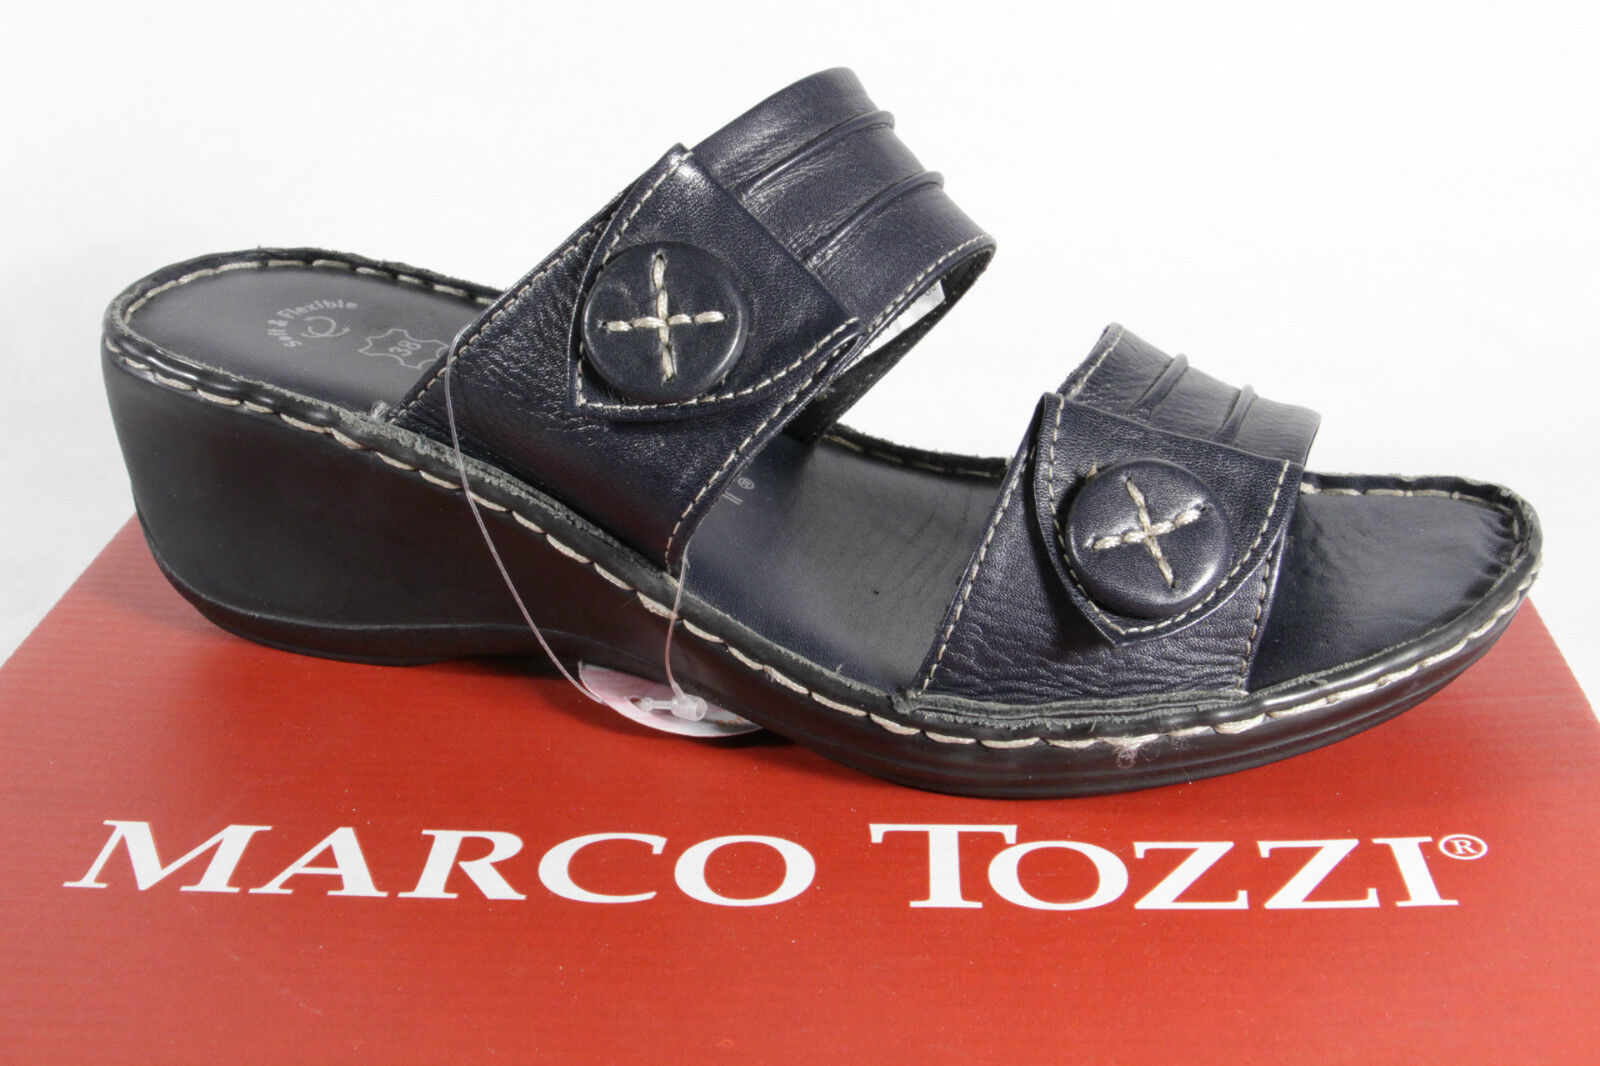 Marco tozzi Ladies Mules Sandals Real Leather bluee